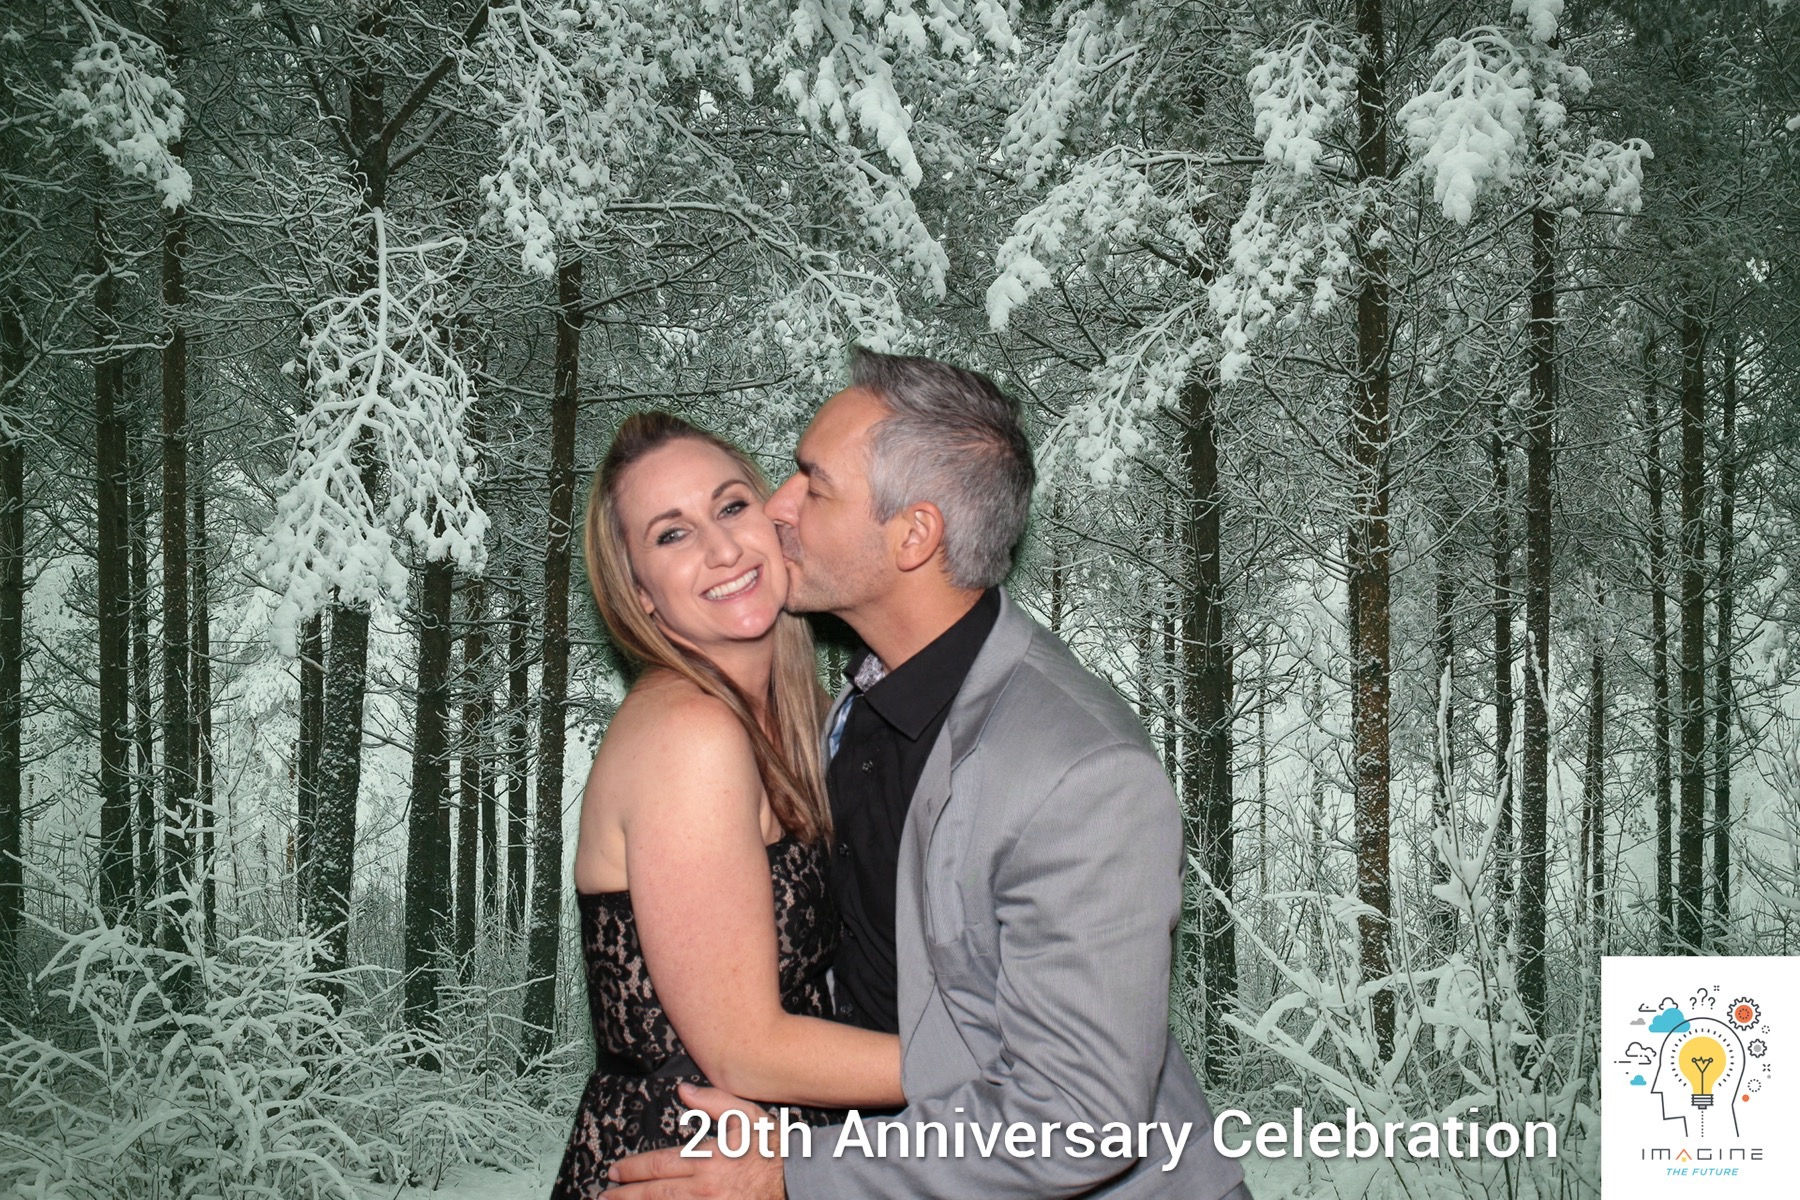 A high resolution green screen photo taken by a Maple Leaf Photo Booth at a holiday party for move.com and realtor.com planned by a San Francisco corporate event planning firm